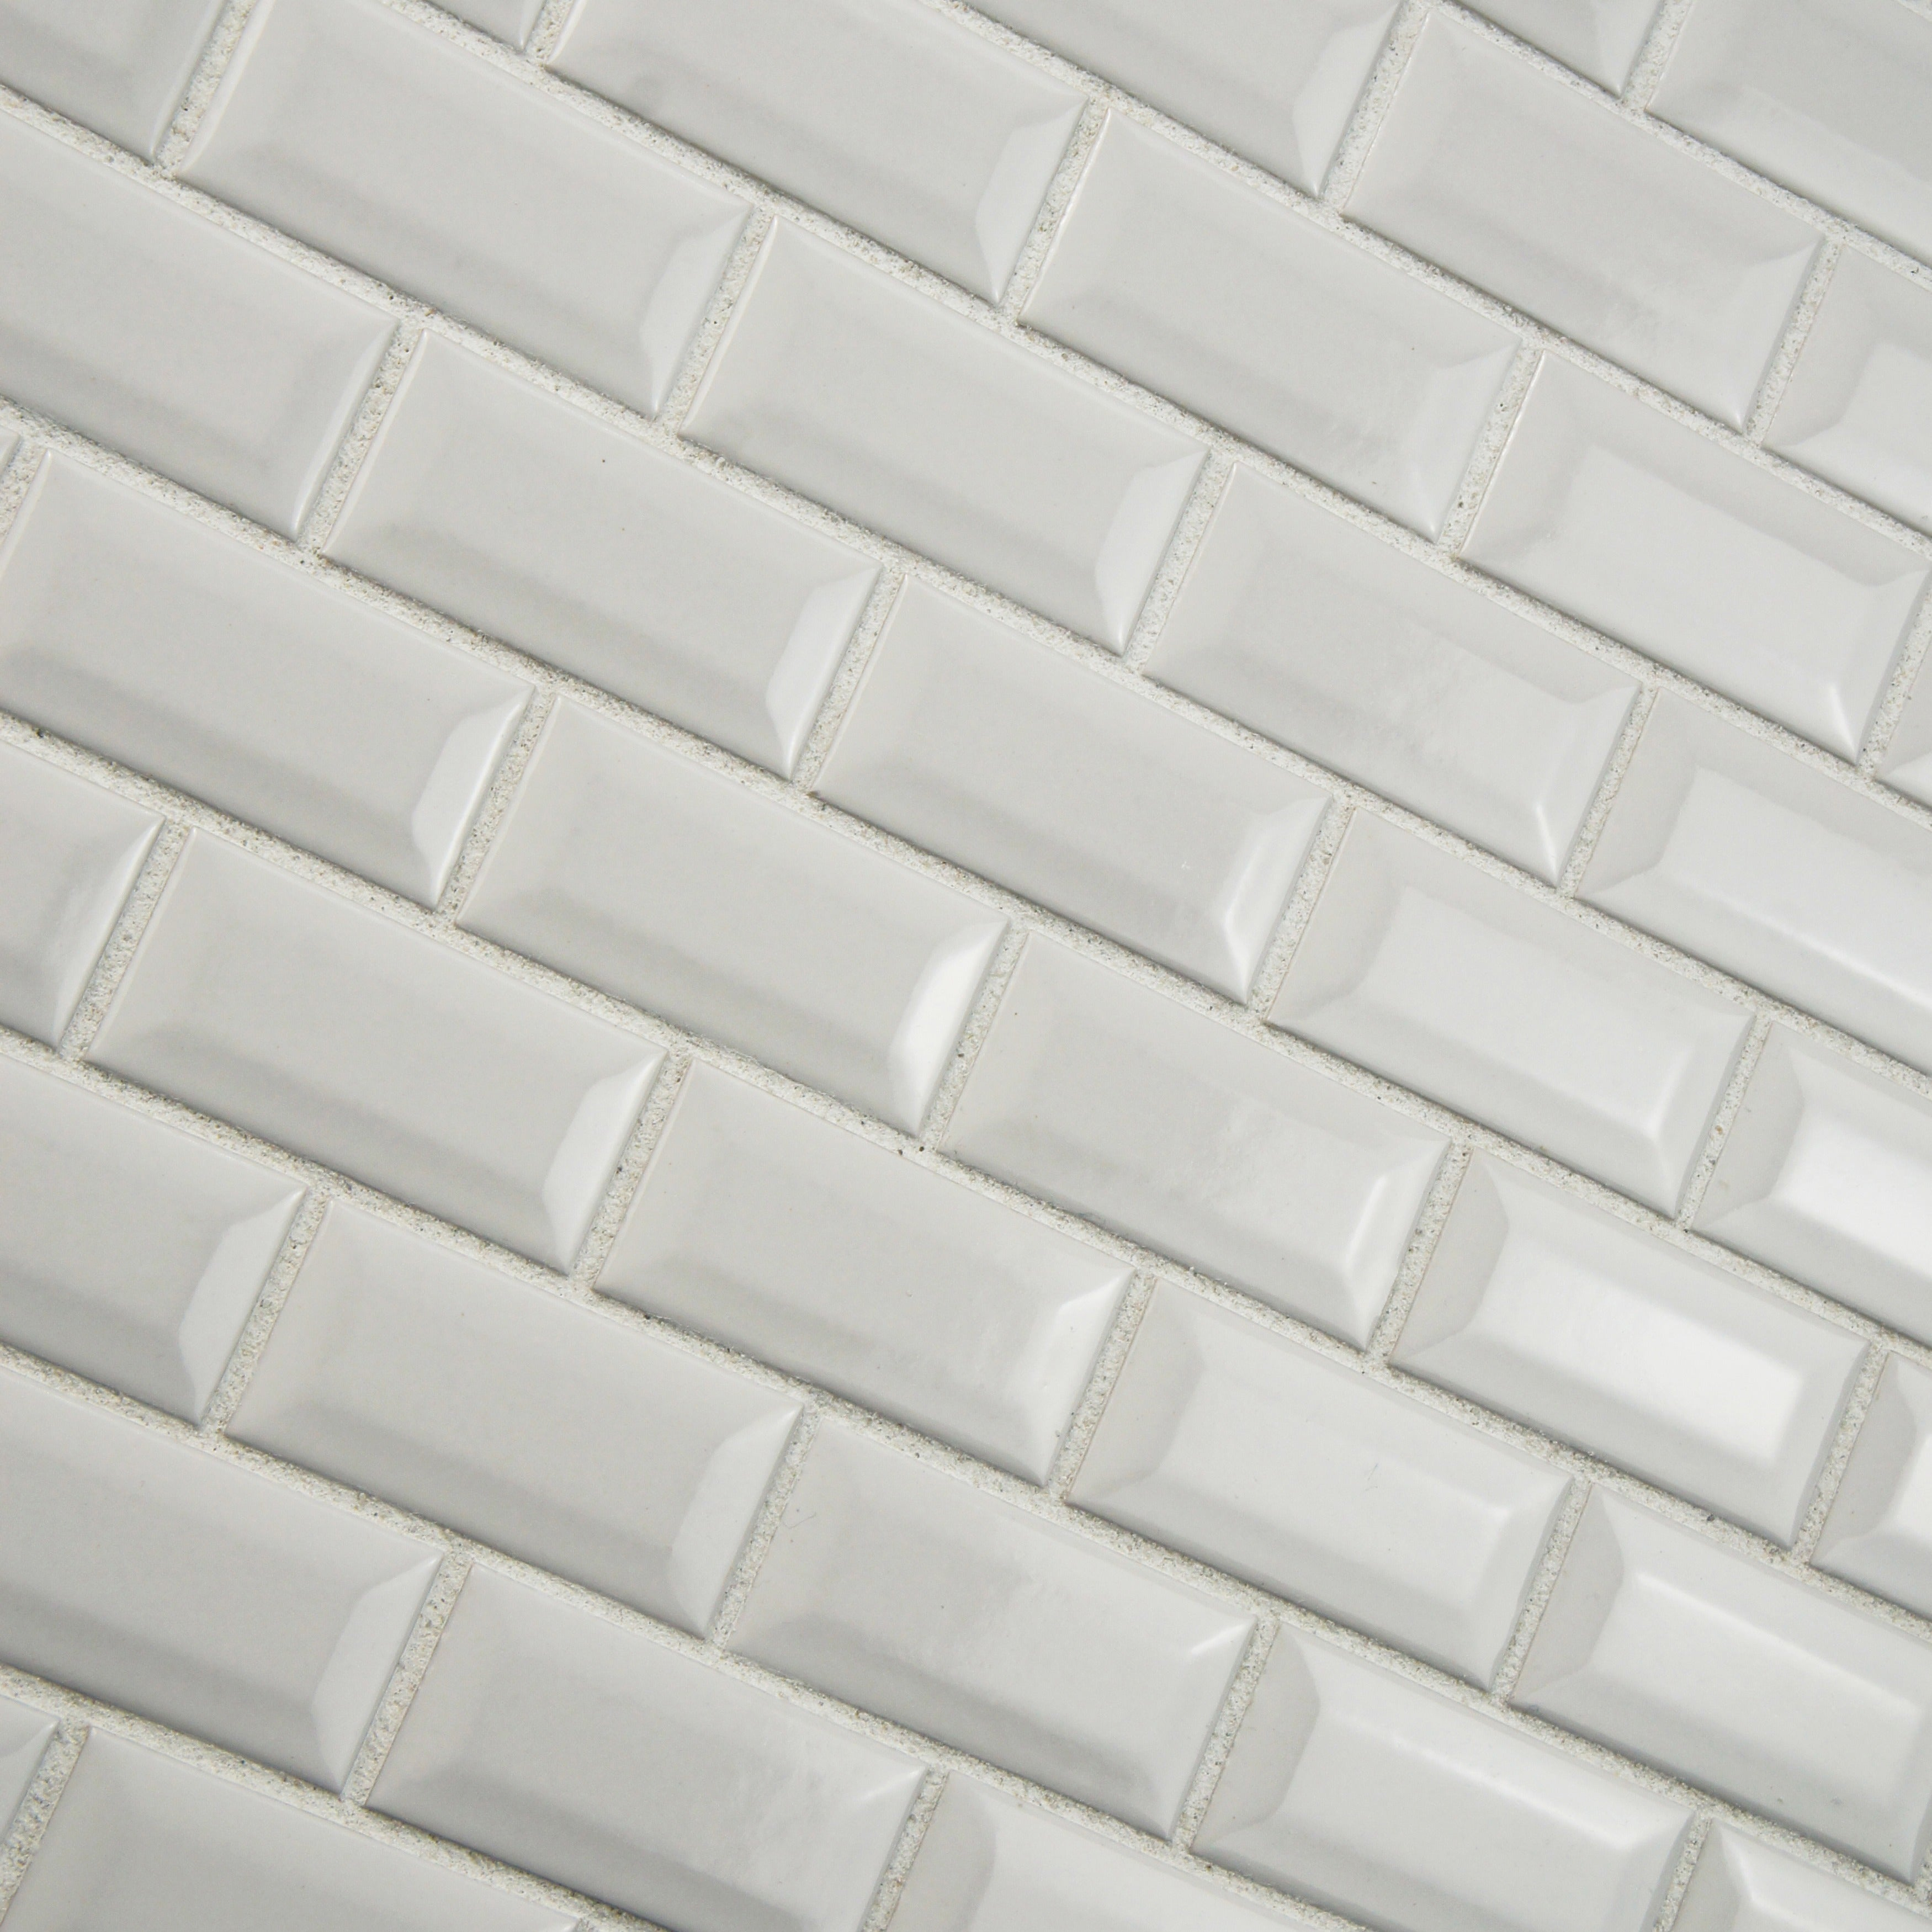 Somertile 12x12 inch victorian subway beveled glossy white somertile 12x12 inch victorian subway beveled glossy white porcelain mosaic floor and wall tile 10 tiles10 sqft free shipping today overstock dailygadgetfo Choice Image